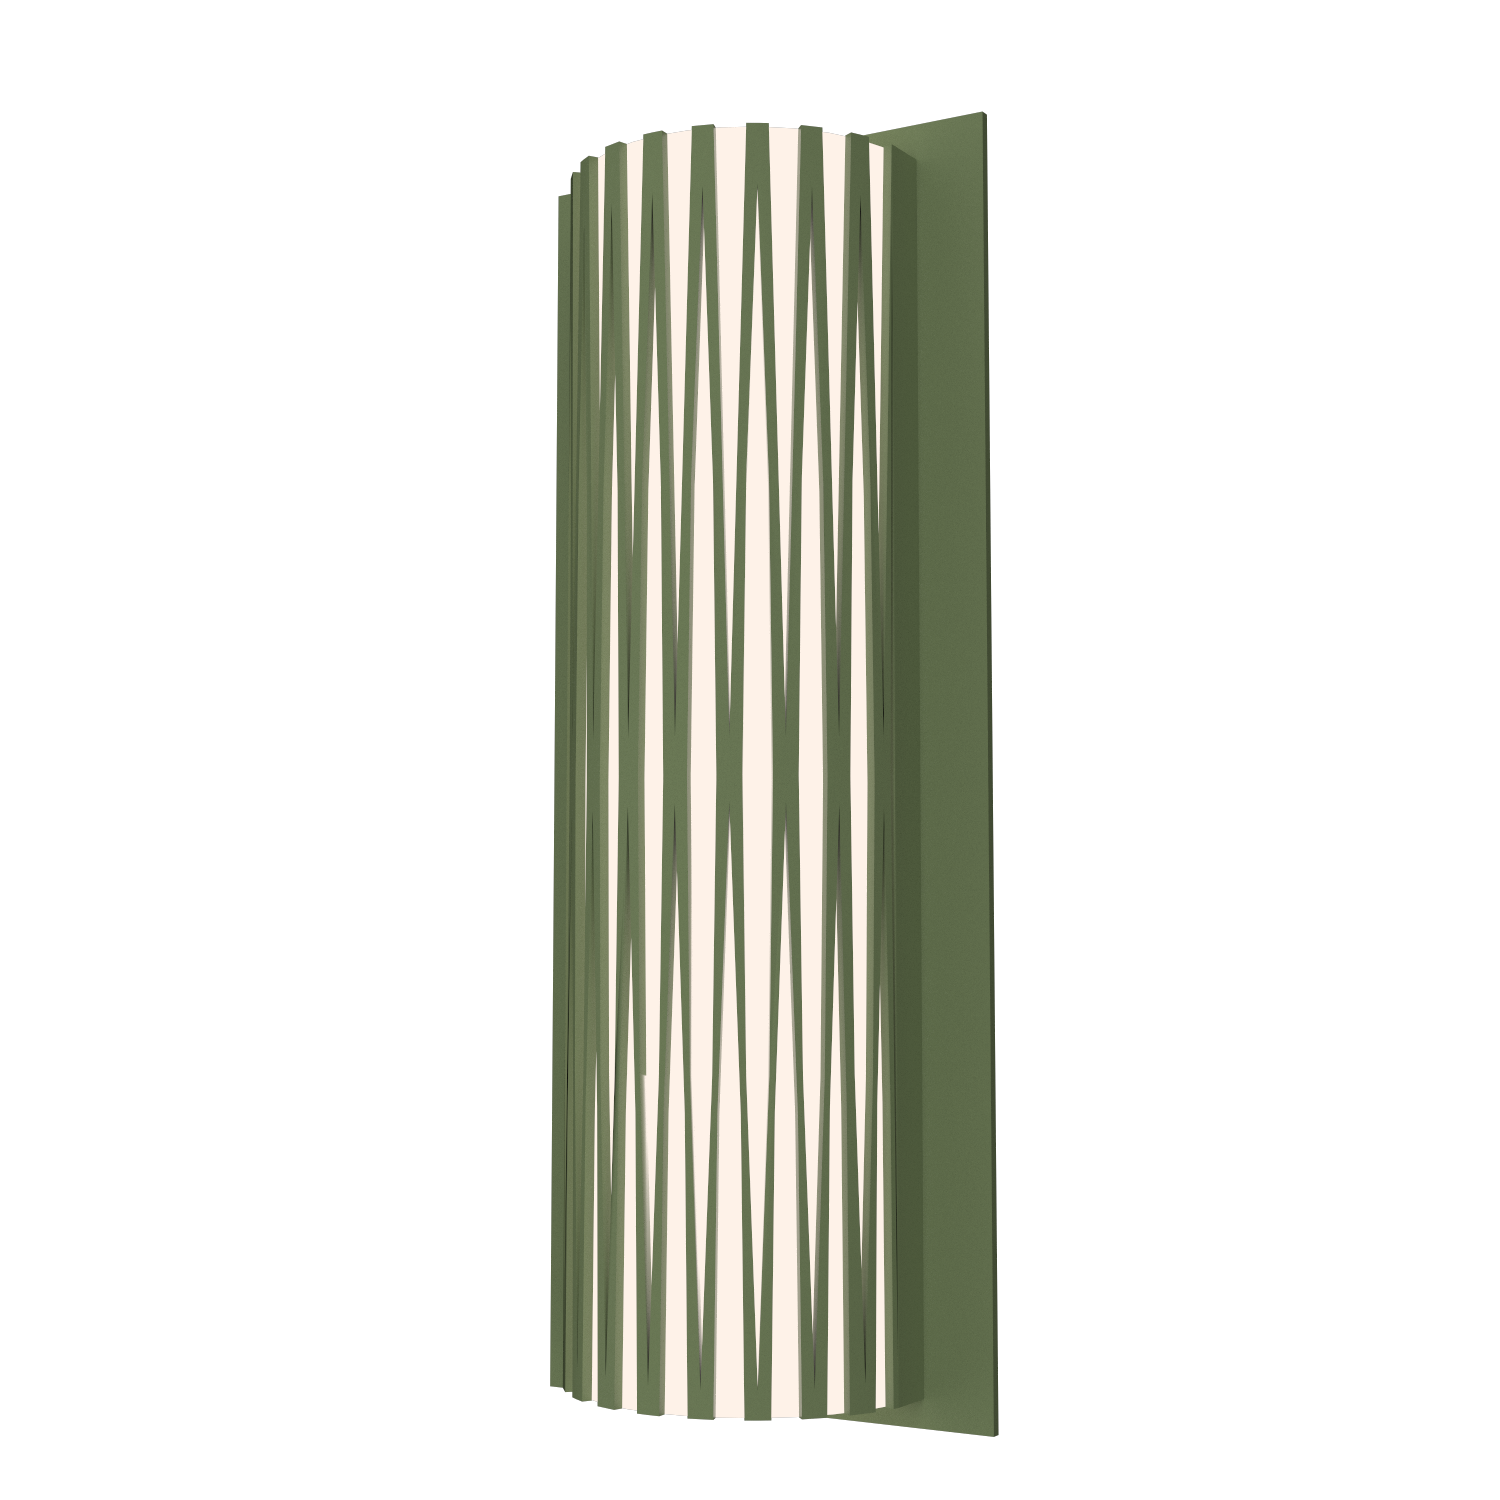 Wall Lamp Accord Living Hinges 4071 - Living Hinges Line Accord Lighting | 30. Olive Green